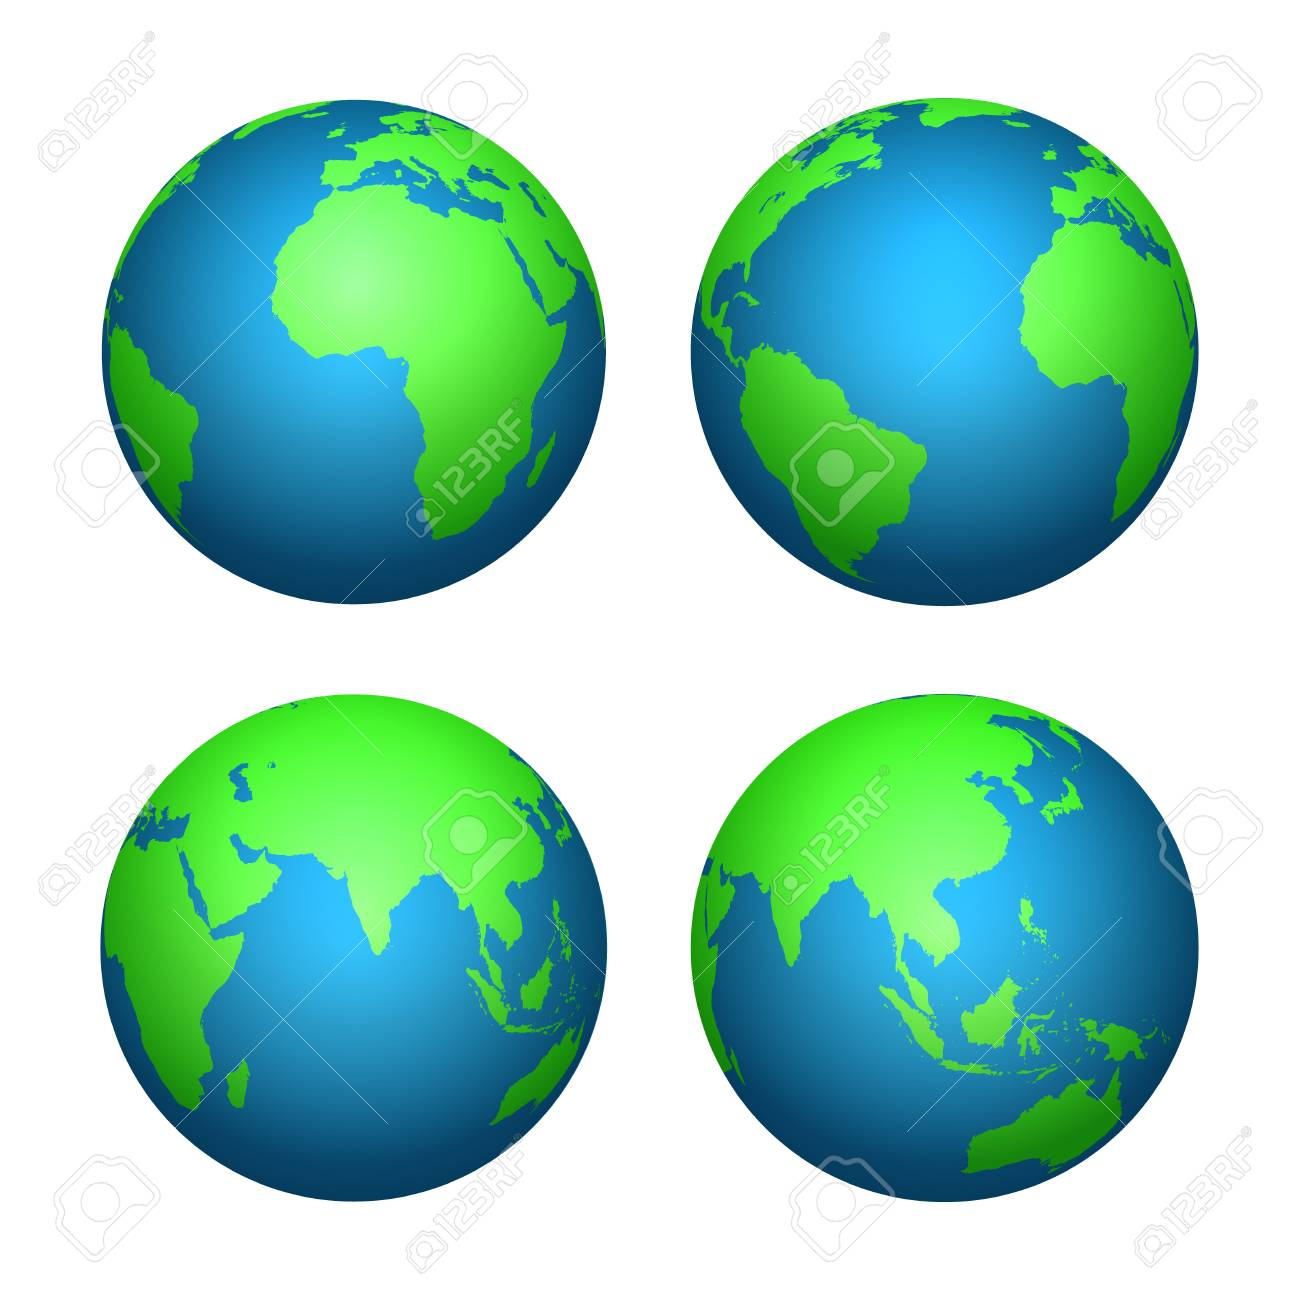 Earth 3d Globe World Map With Green Continents And Blue Oceans